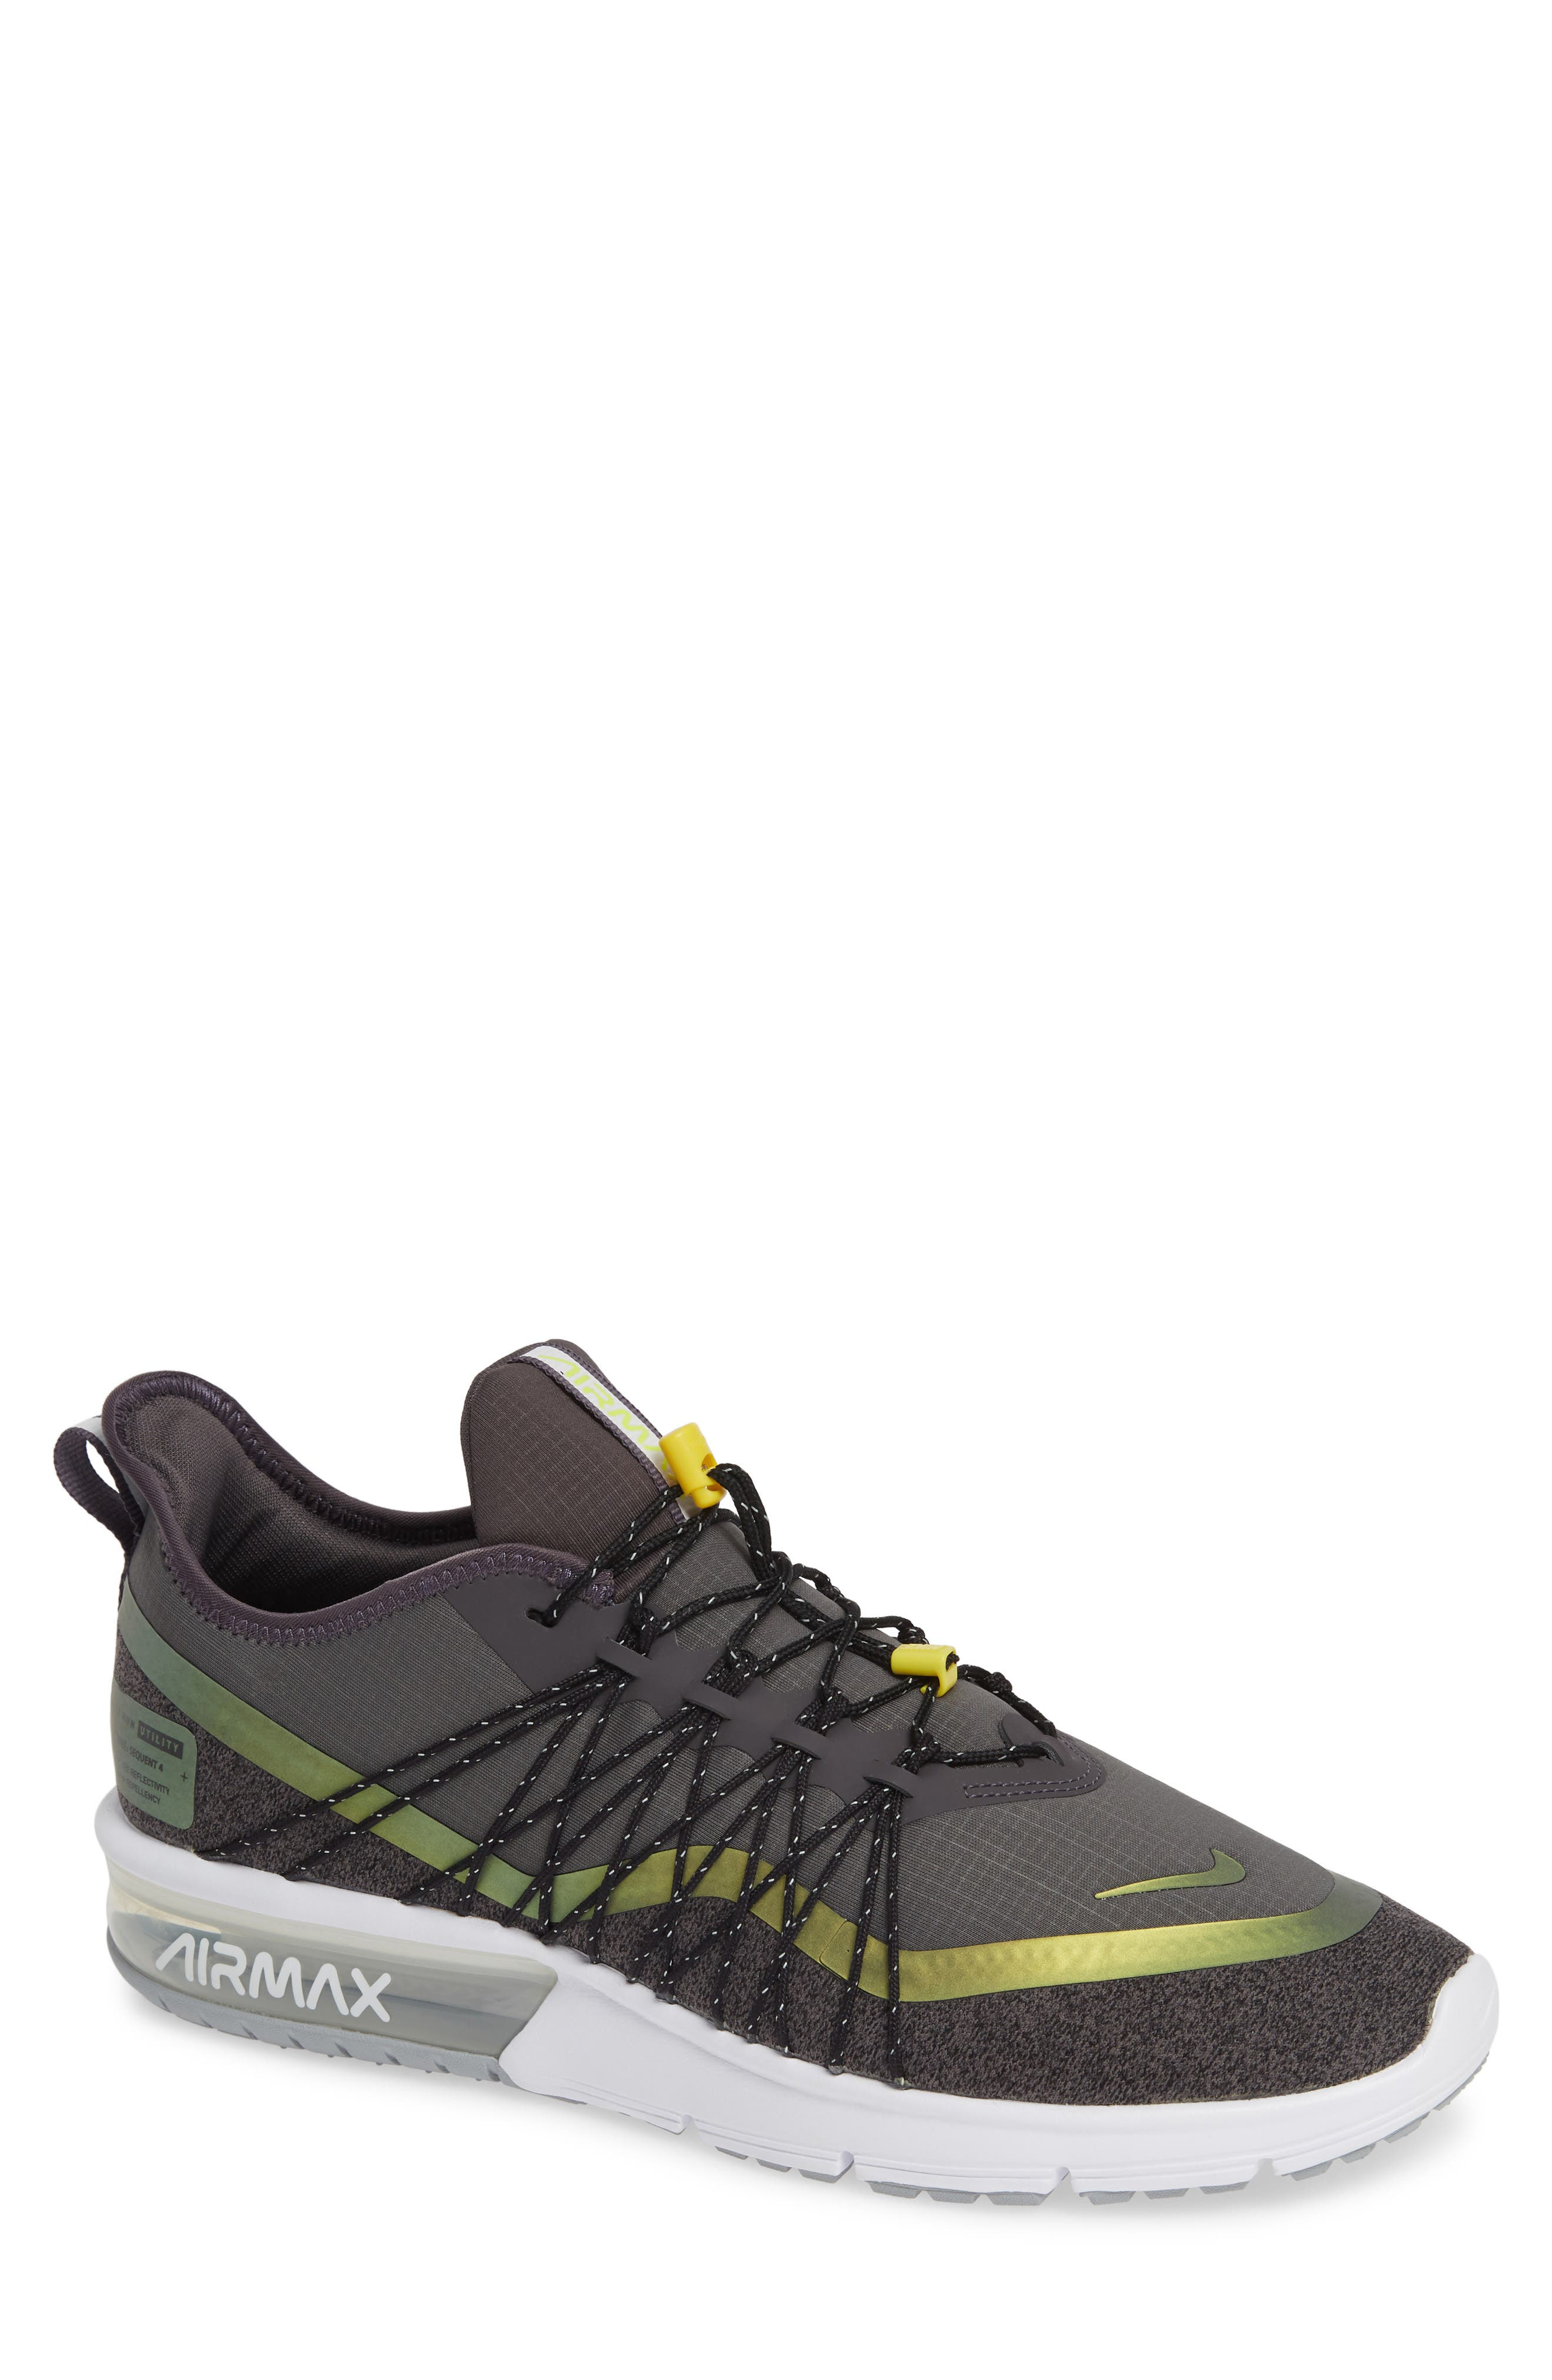 Air Max Sequent 4 Utility Running Shoe,                             Main thumbnail 1, color,                             THUNDER GREY/ VOLT